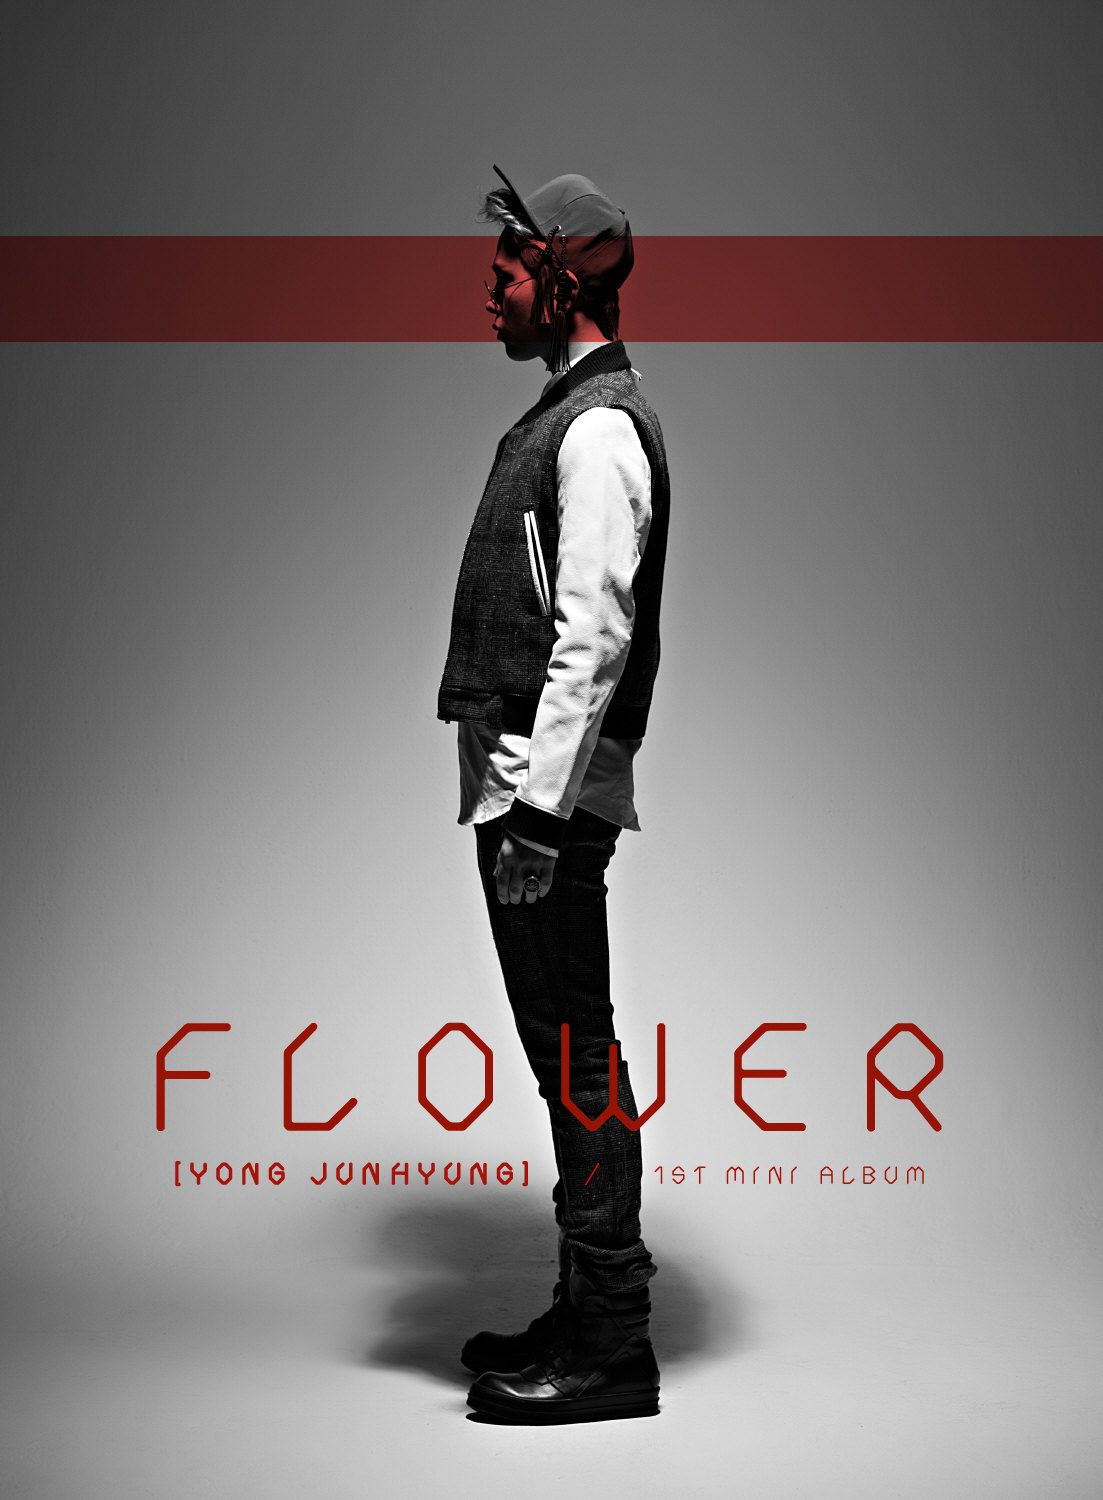 [Mini Album] Yong Jun Hyung - Flower [1st Mini Album]